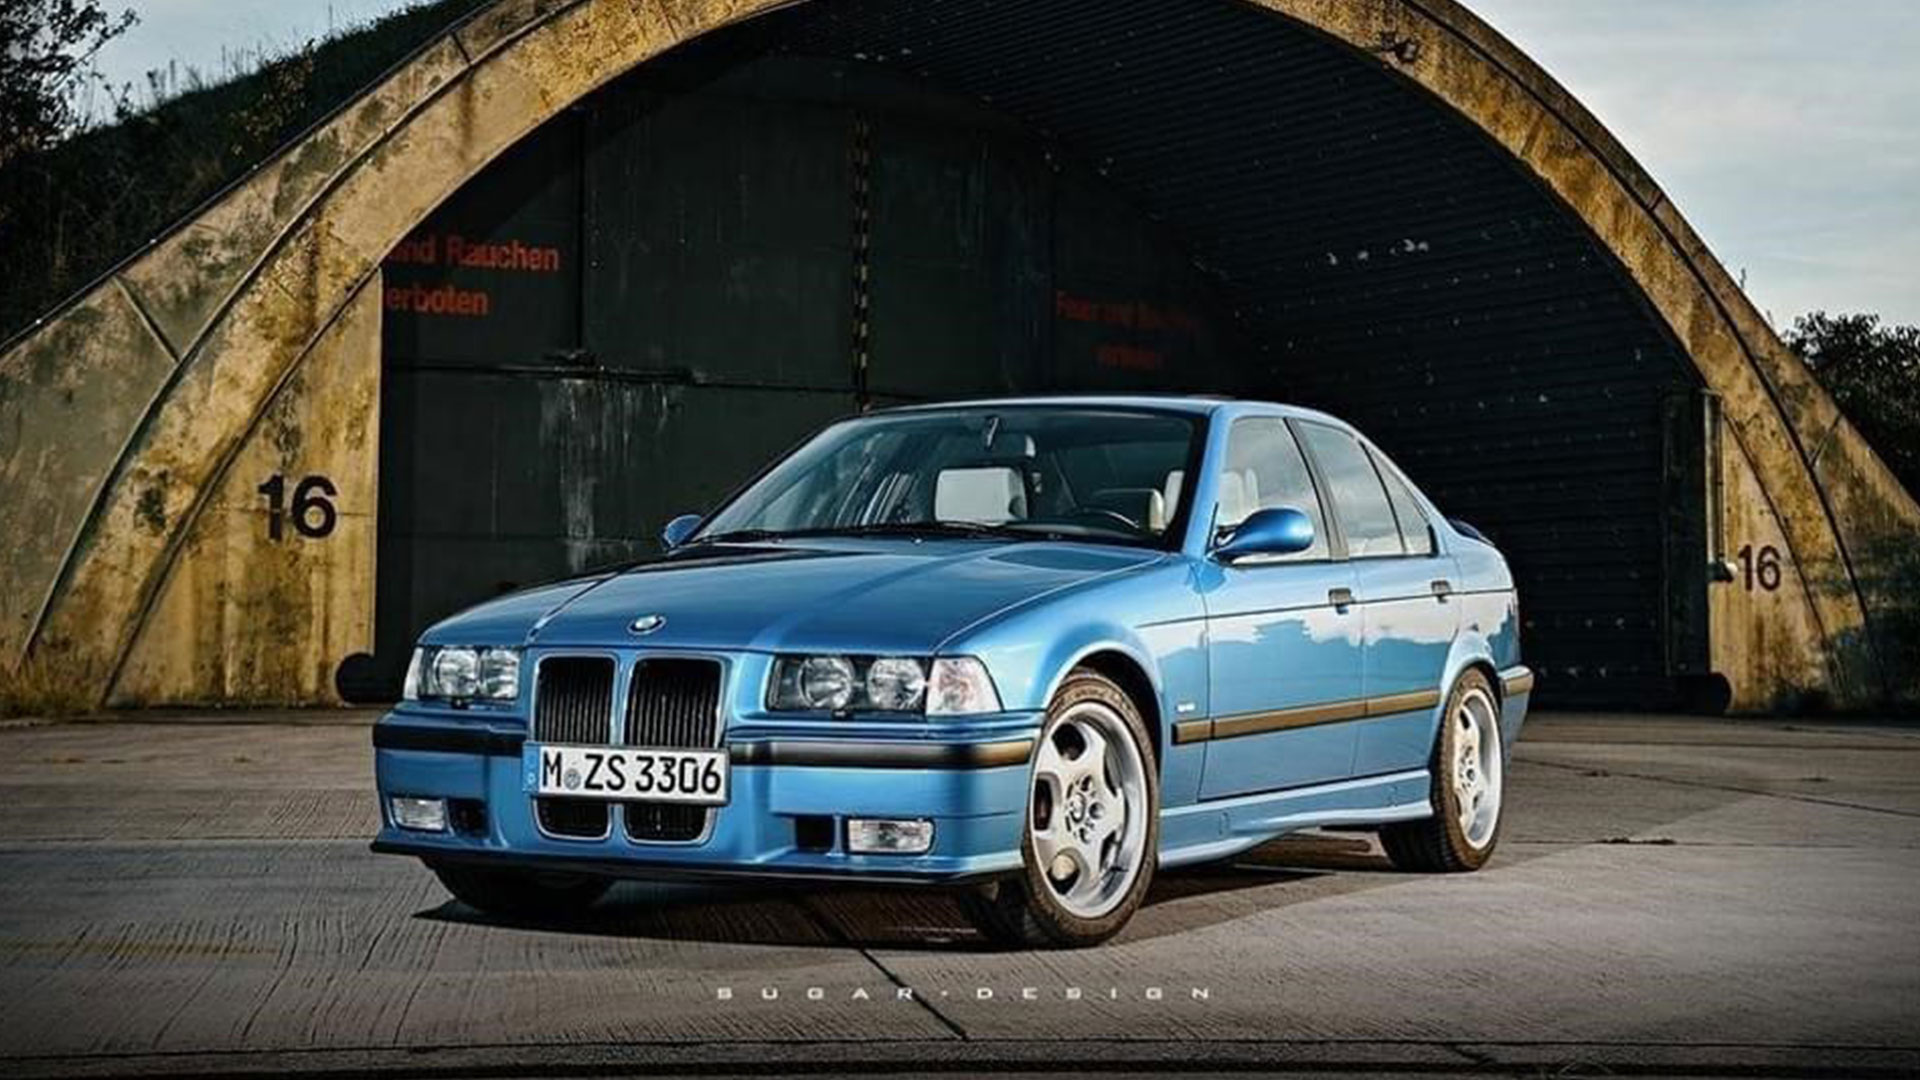 BMW M3 E36 met grote grille